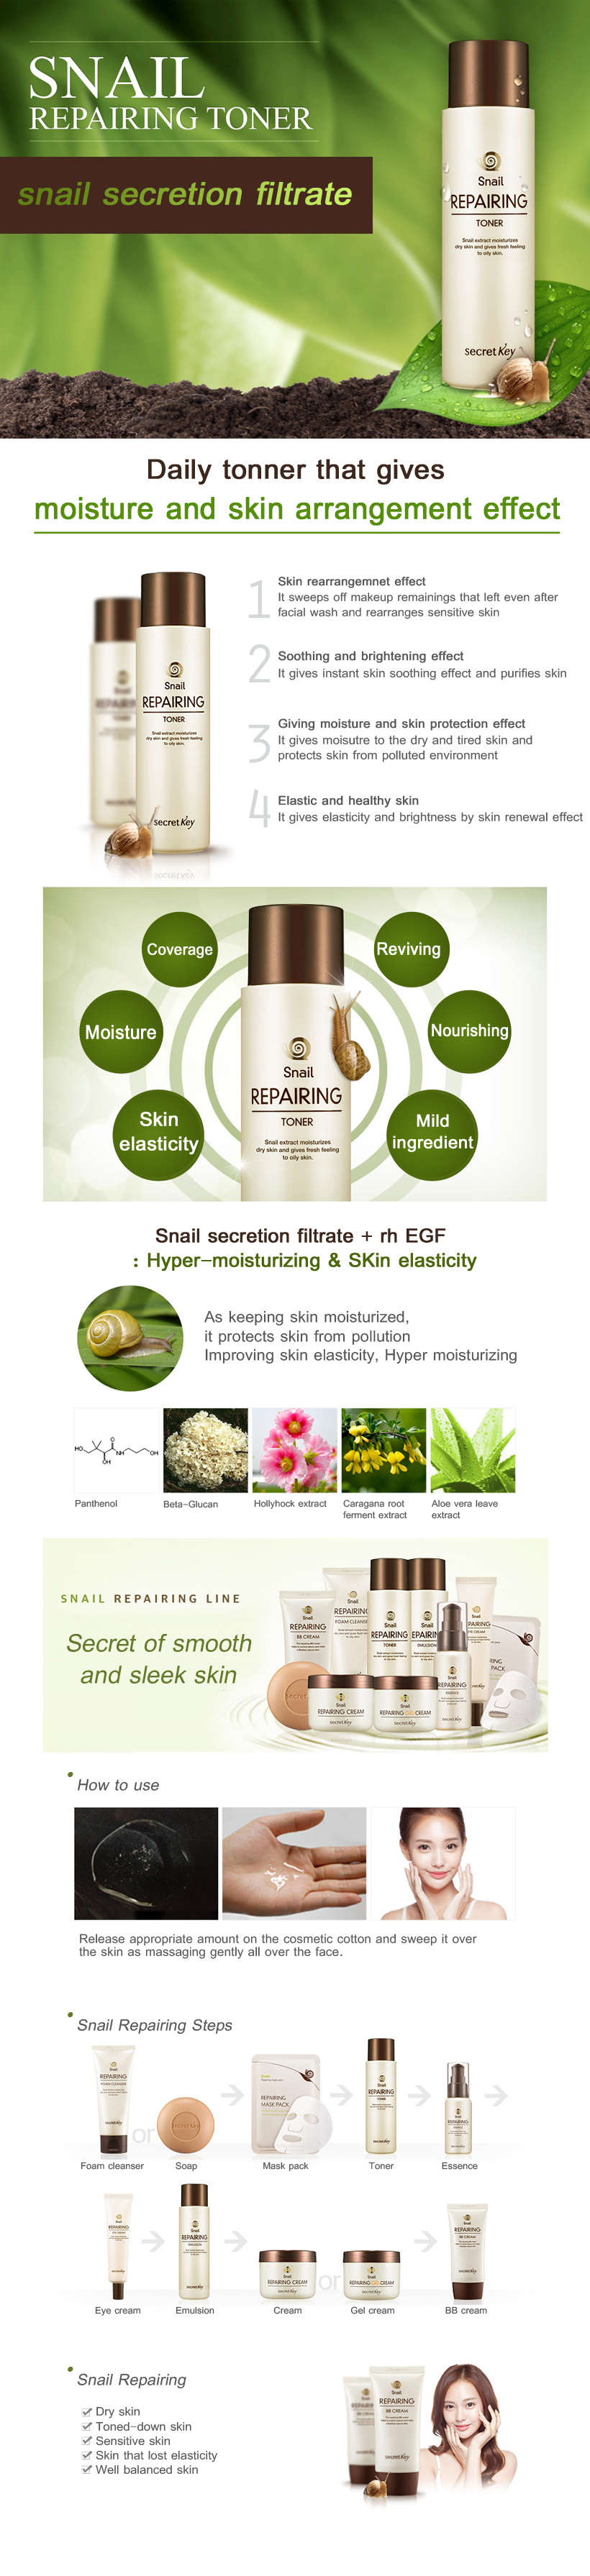 Secret Key Snail Repairing Toner 150ml Face Makeup Water Aloe Fresh 248ml Wet A Cotton Pad And Wipe Smoothly